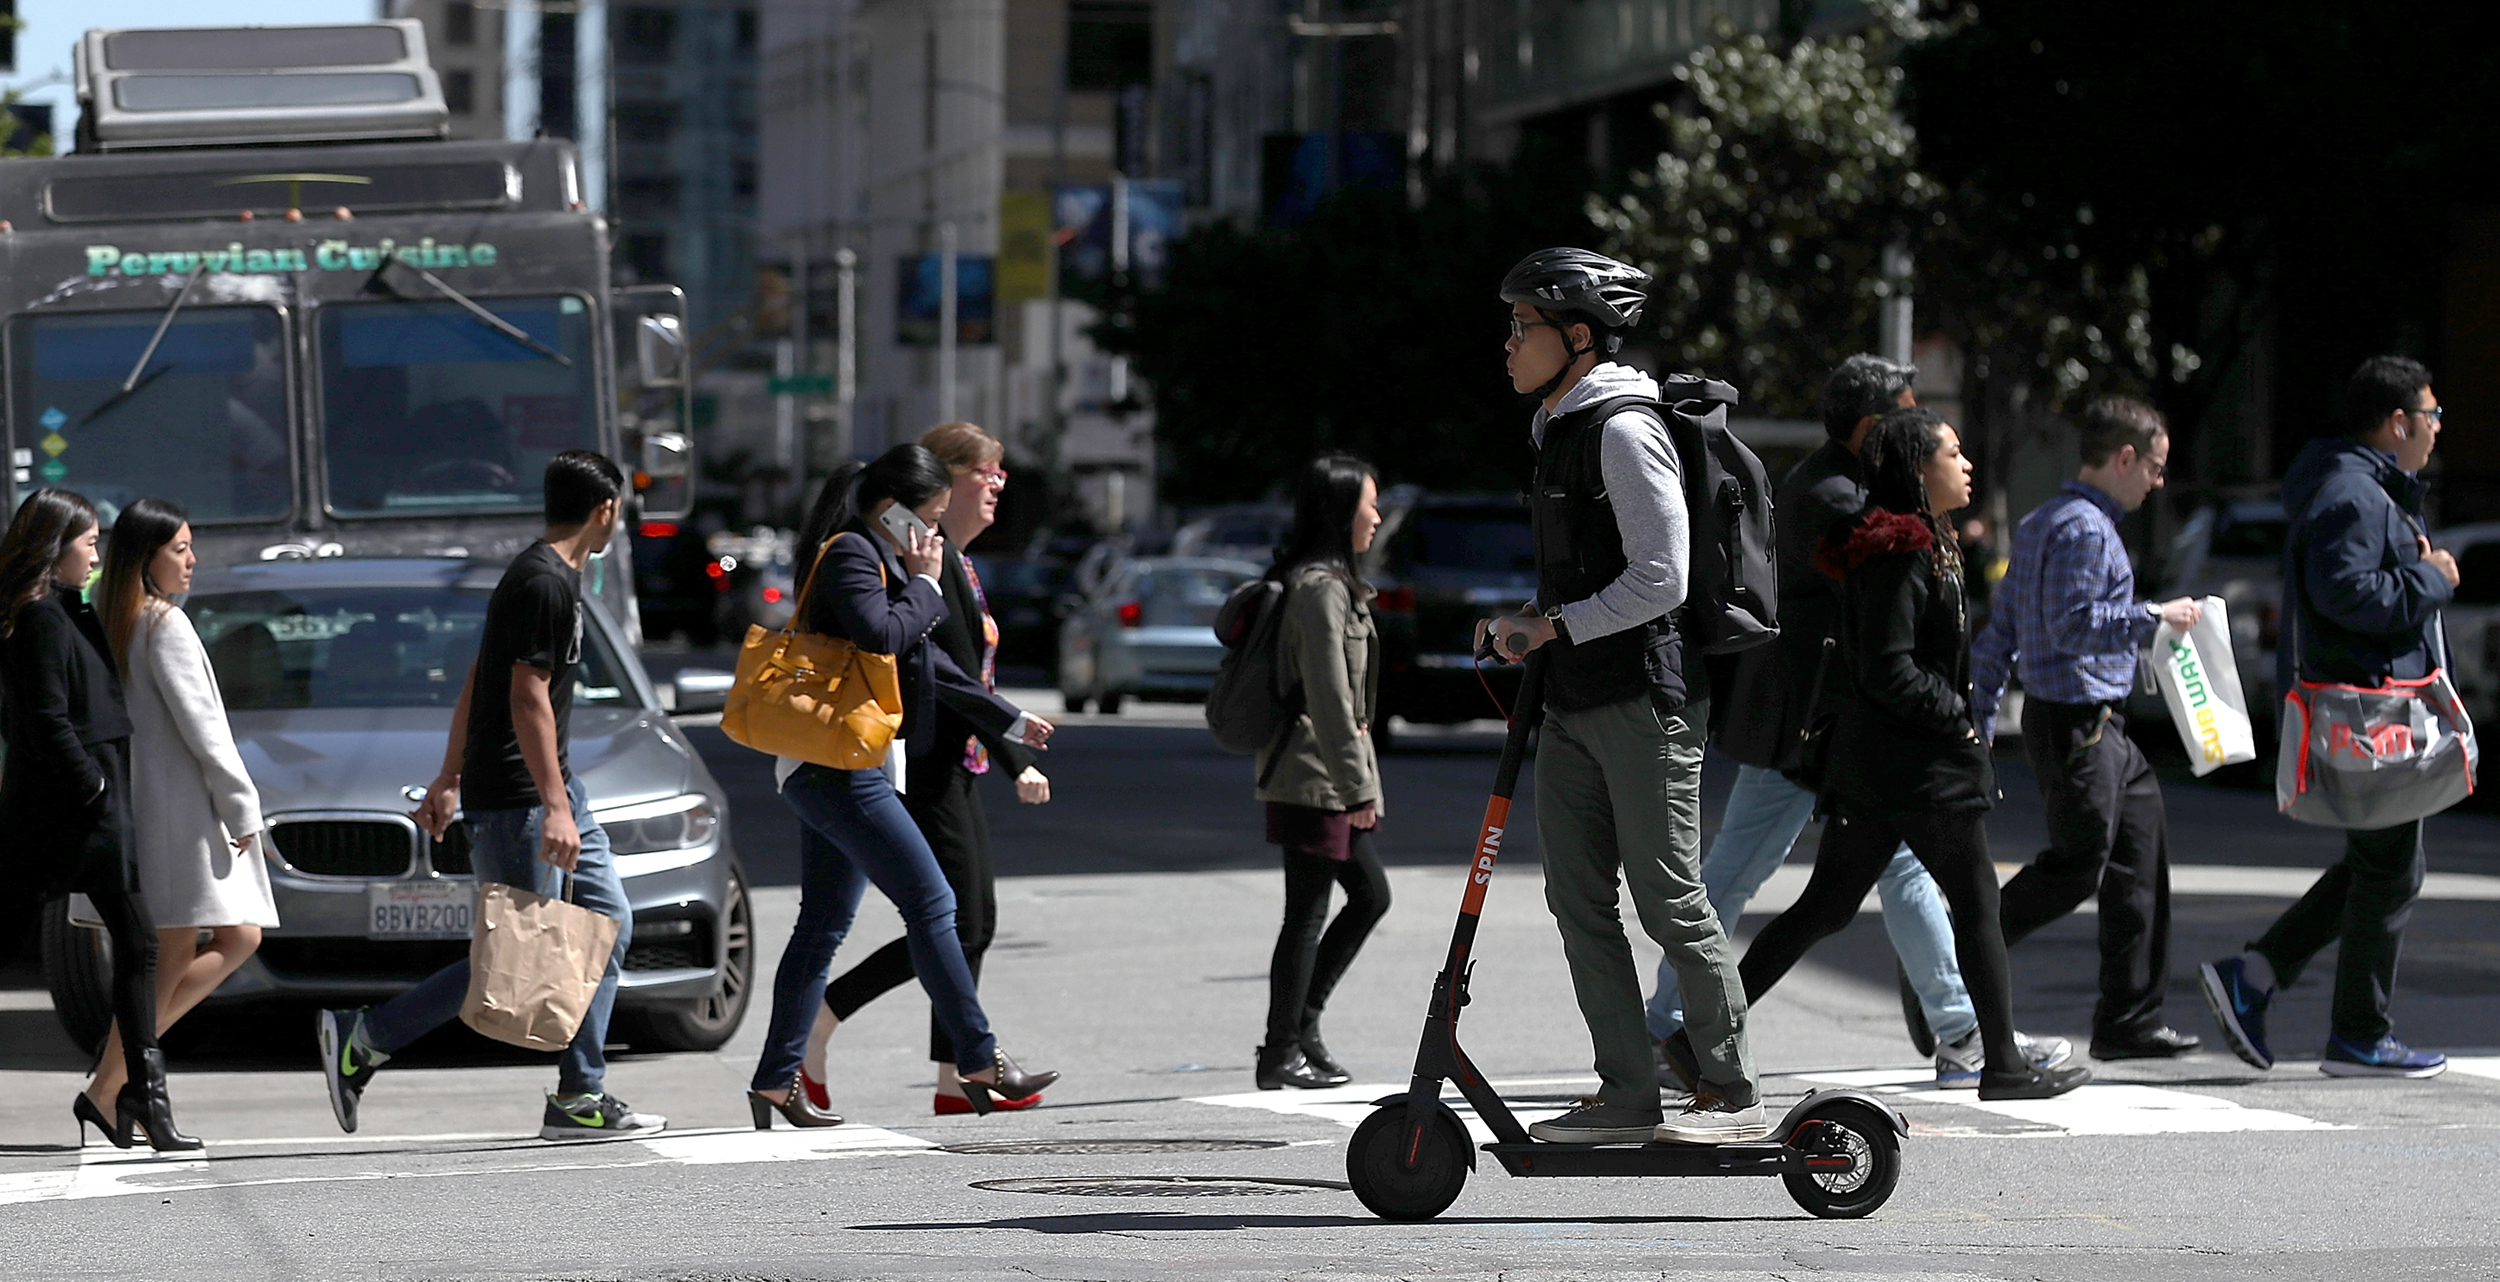 The-next-Uber?-Scooter-startups-flood-U.S.-cities-as-funding-pours-in